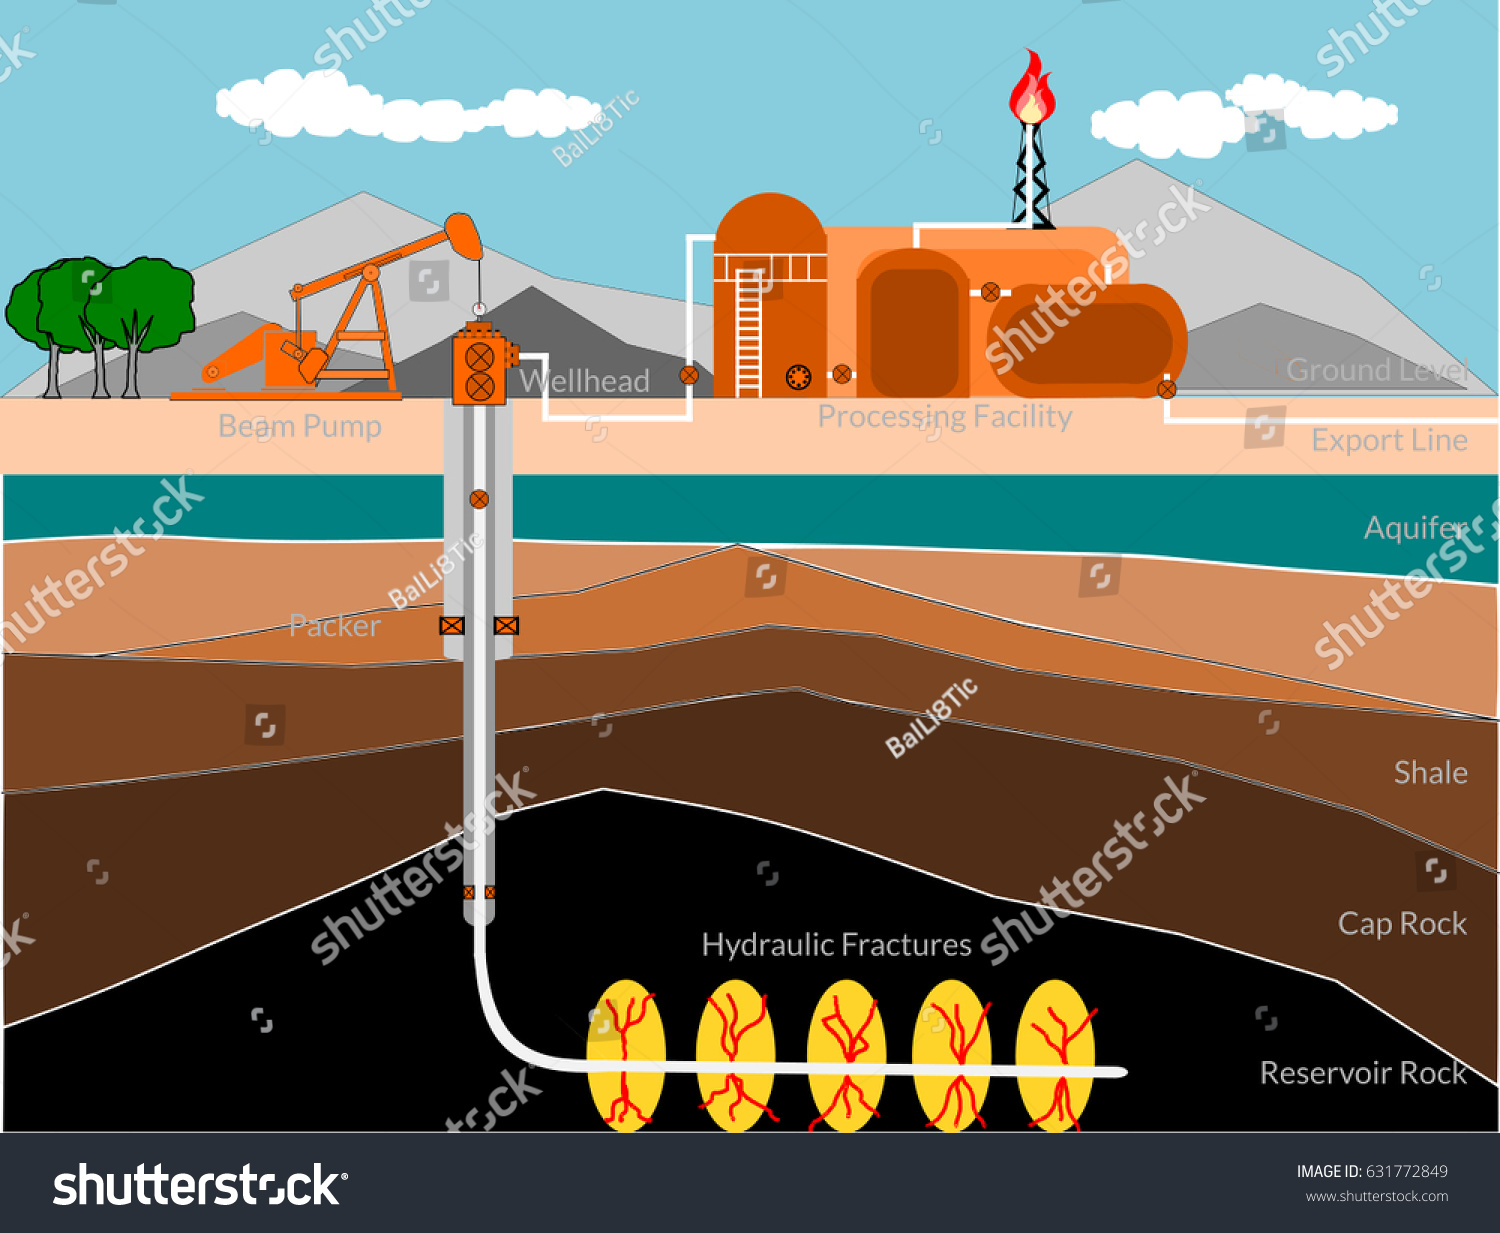 hight resolution of well schematic diagram hydraulic fracturing tight stock vector isolated ground diagram oil diagram ground